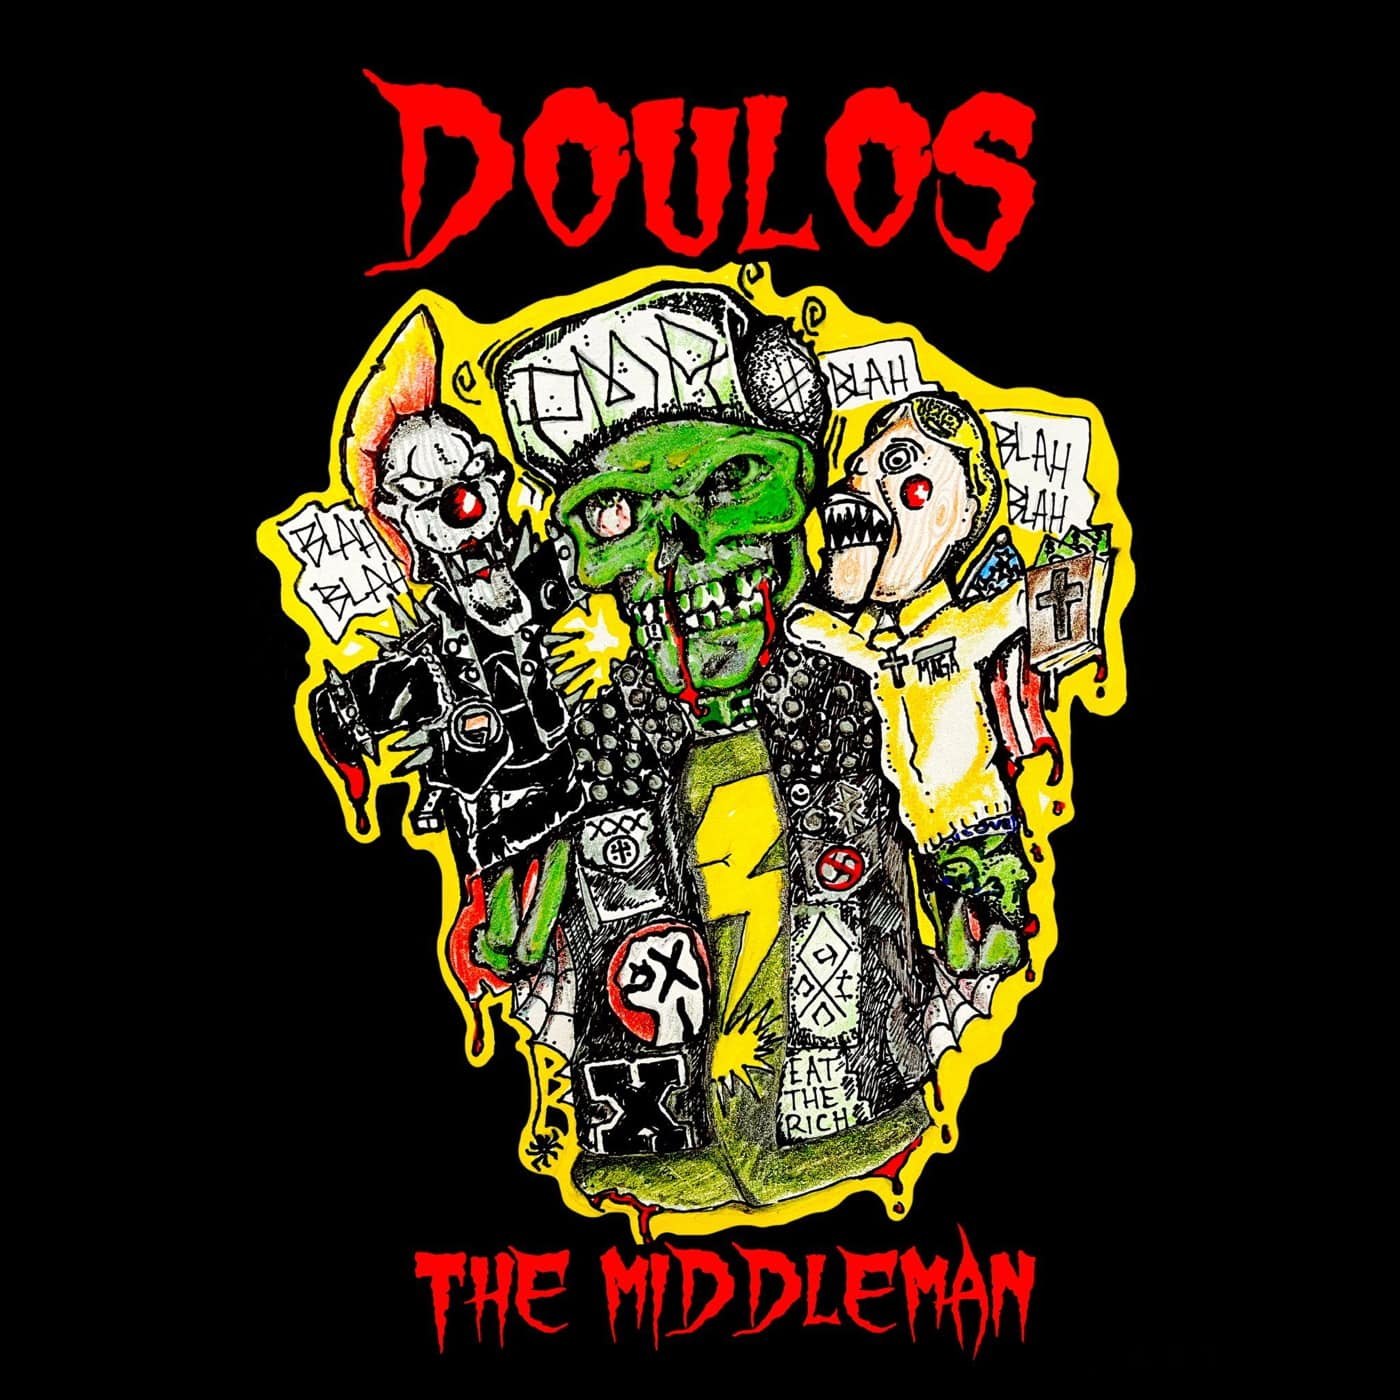 Doulos - The Middleman ALBUM COVER